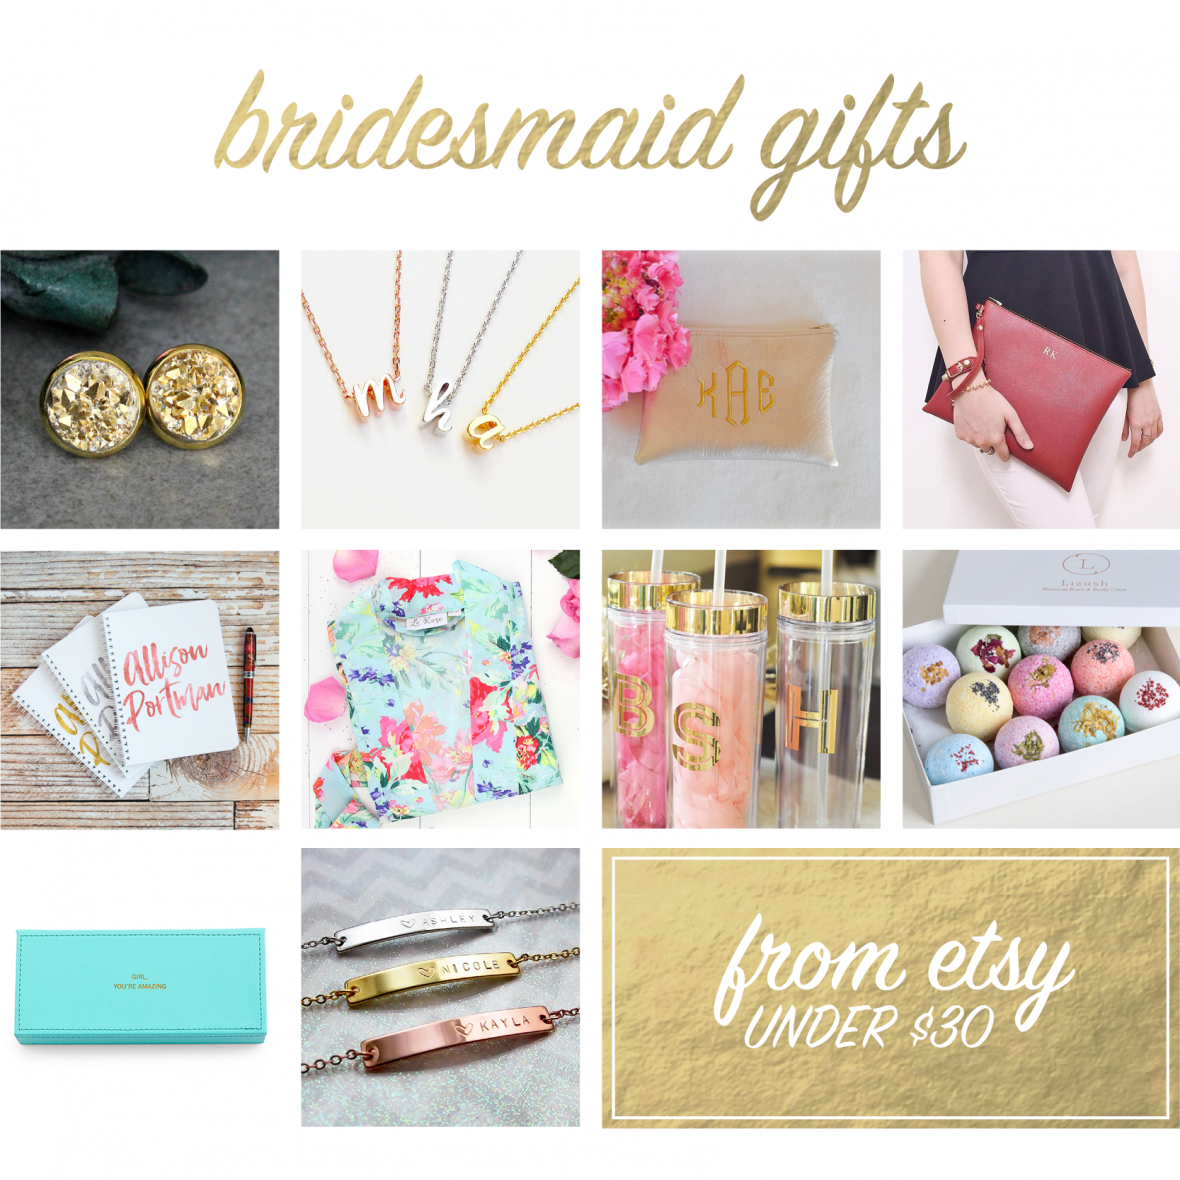 Handmade Gifts for Bridesmaids from Etsy